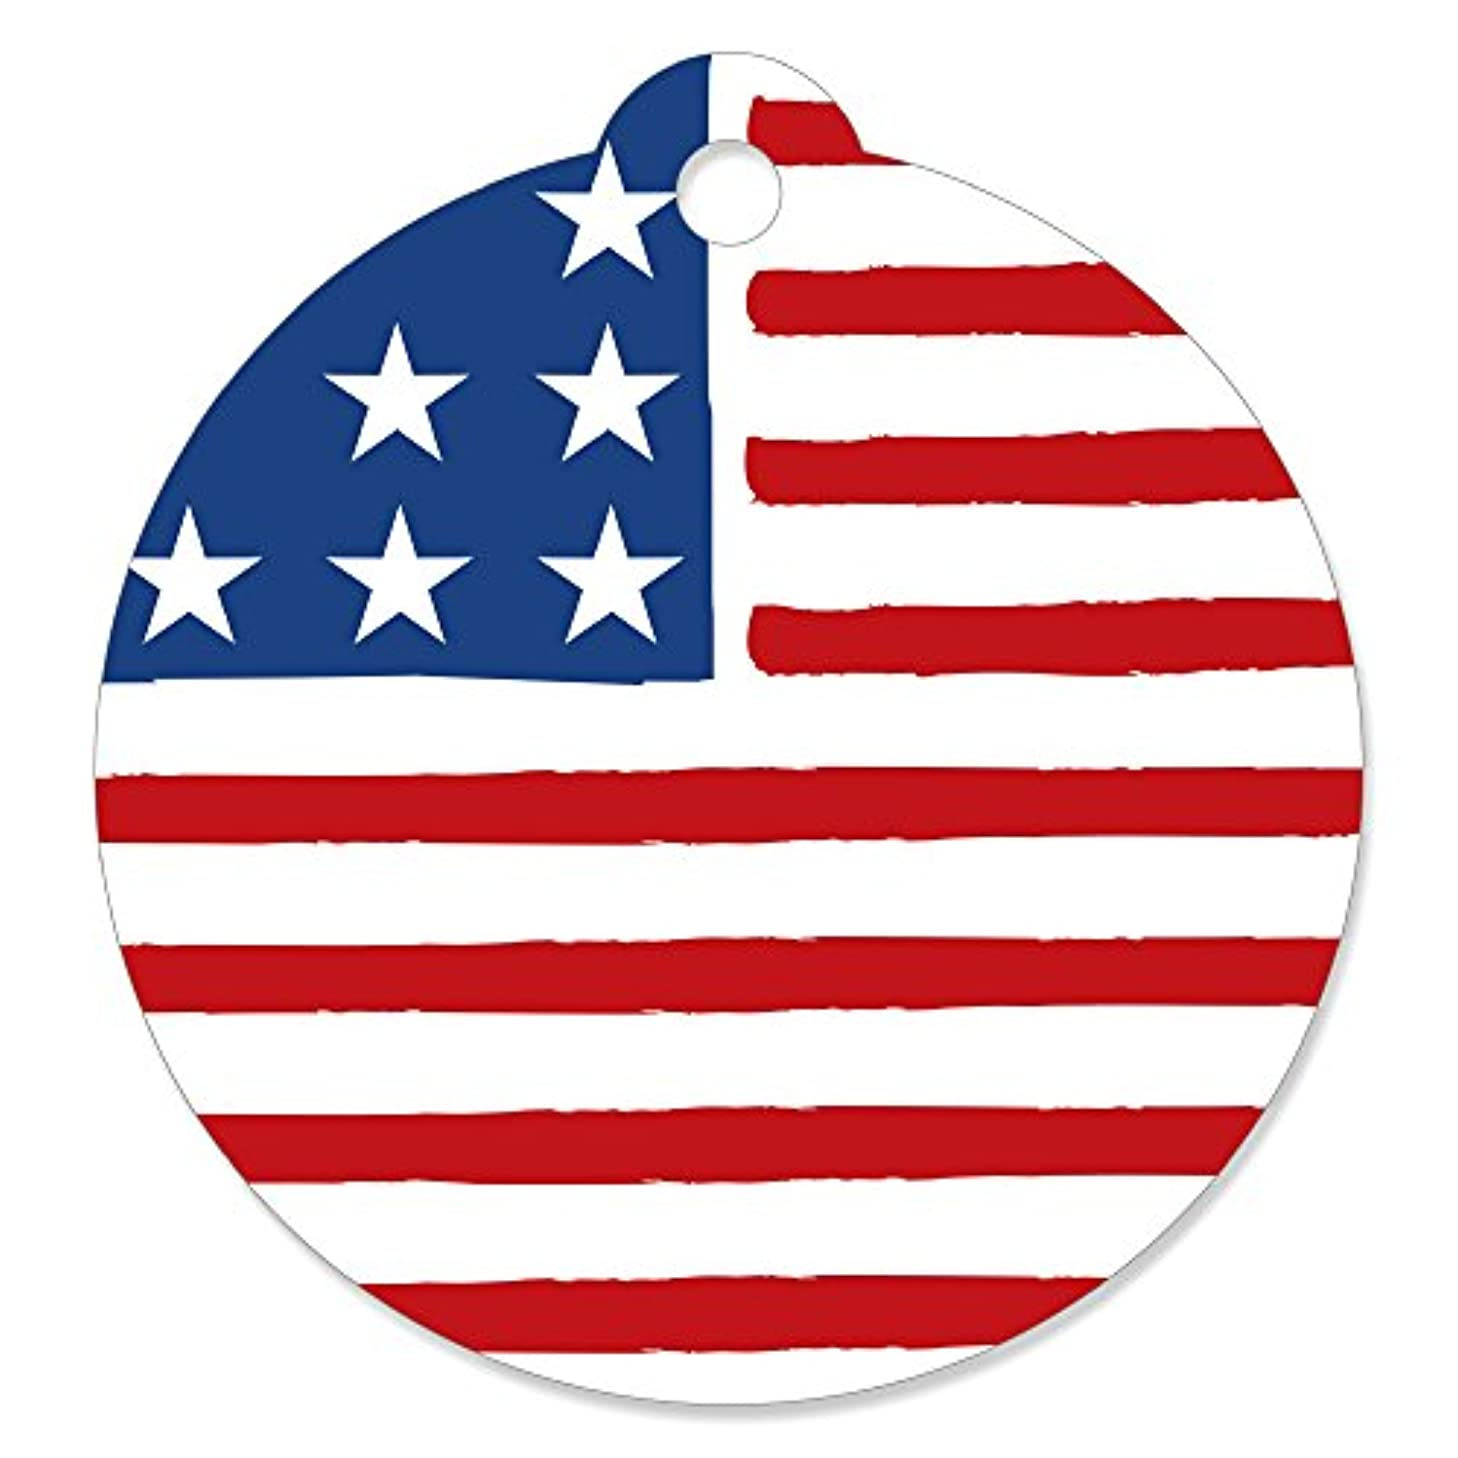 Stars & Stripes - 4th of July USA Patriotic Independence Day Party Favor Gift Tags (Set of 20)